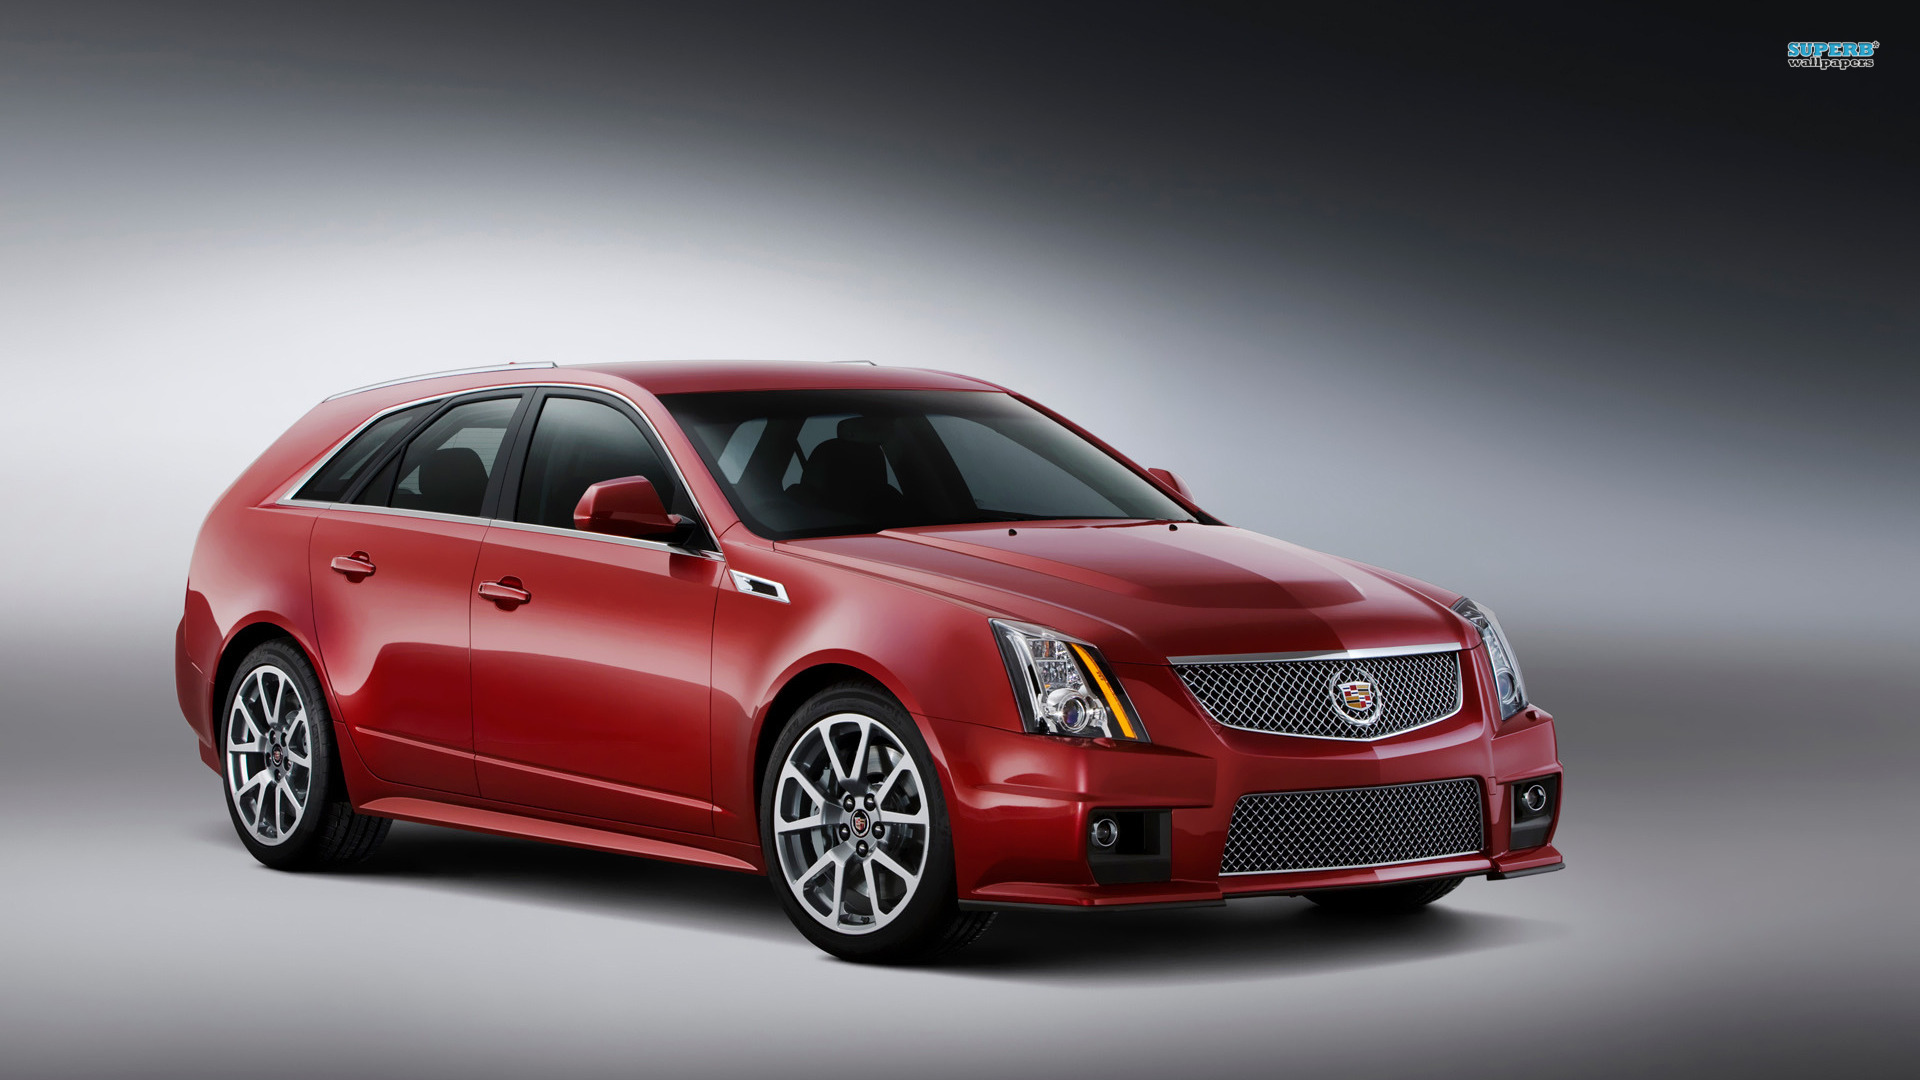 2013 cadillac cts wagon information and photos momentcar. Black Bedroom Furniture Sets. Home Design Ideas